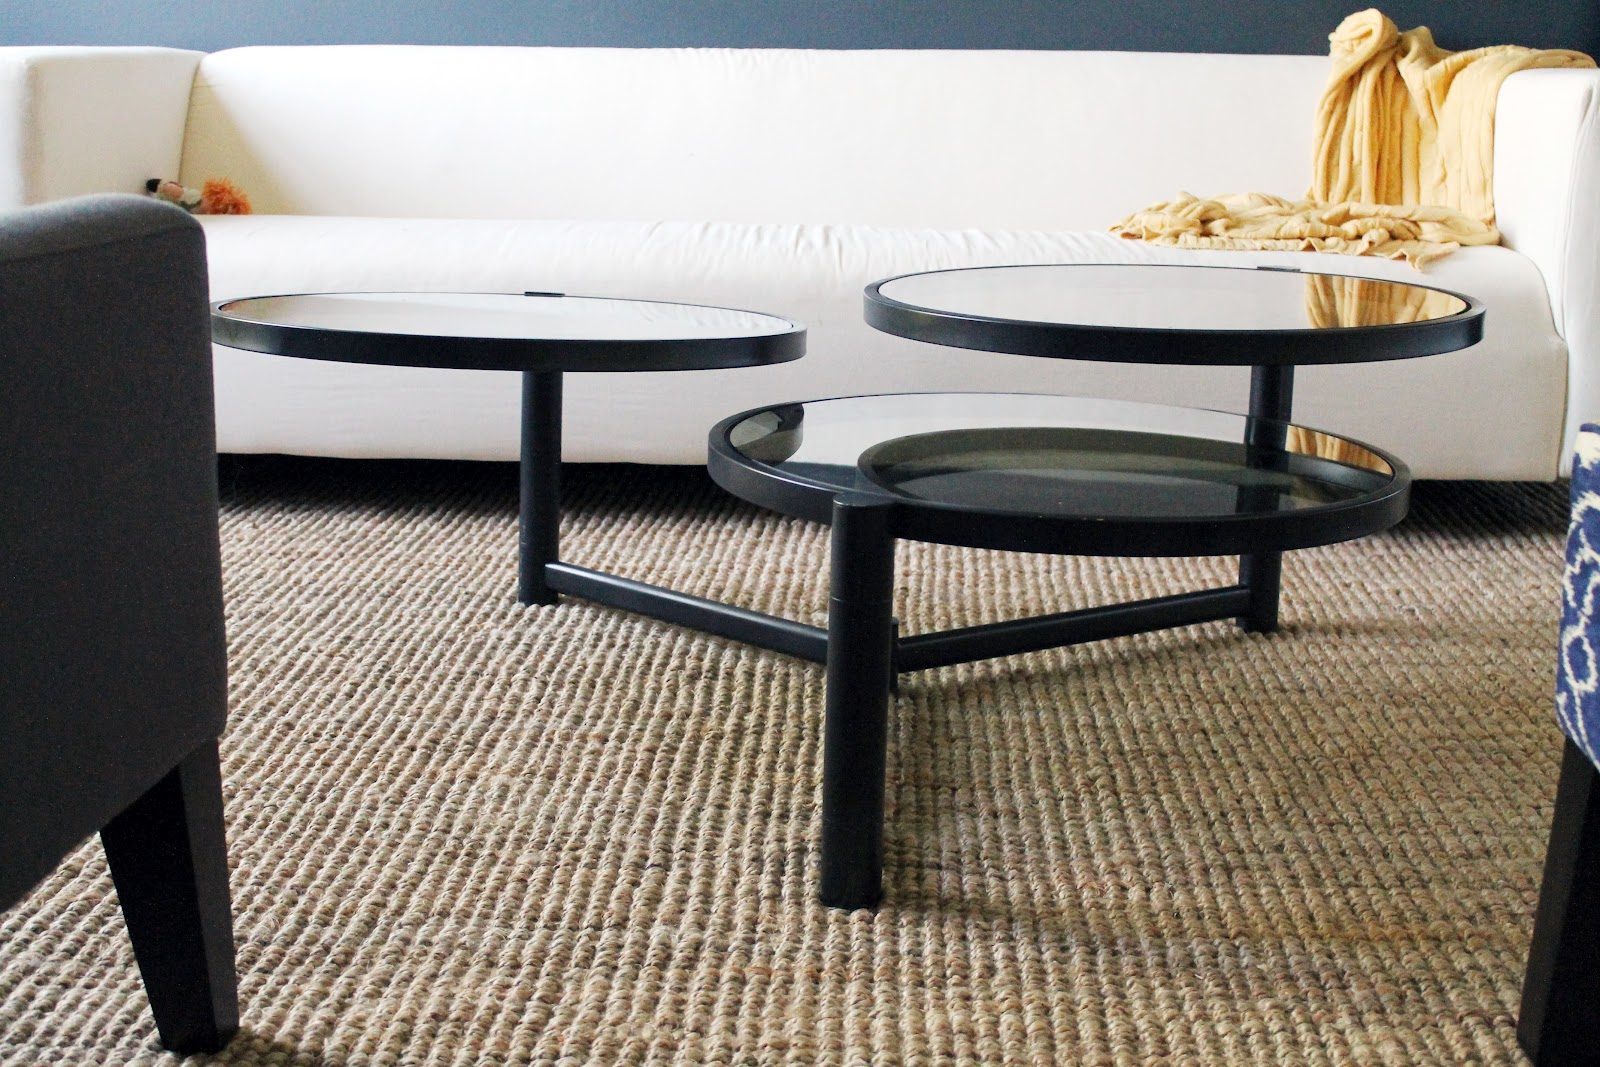 Quirky Tables Our 50 Quirky Cool Coffee Table Find Chris Loves Julia